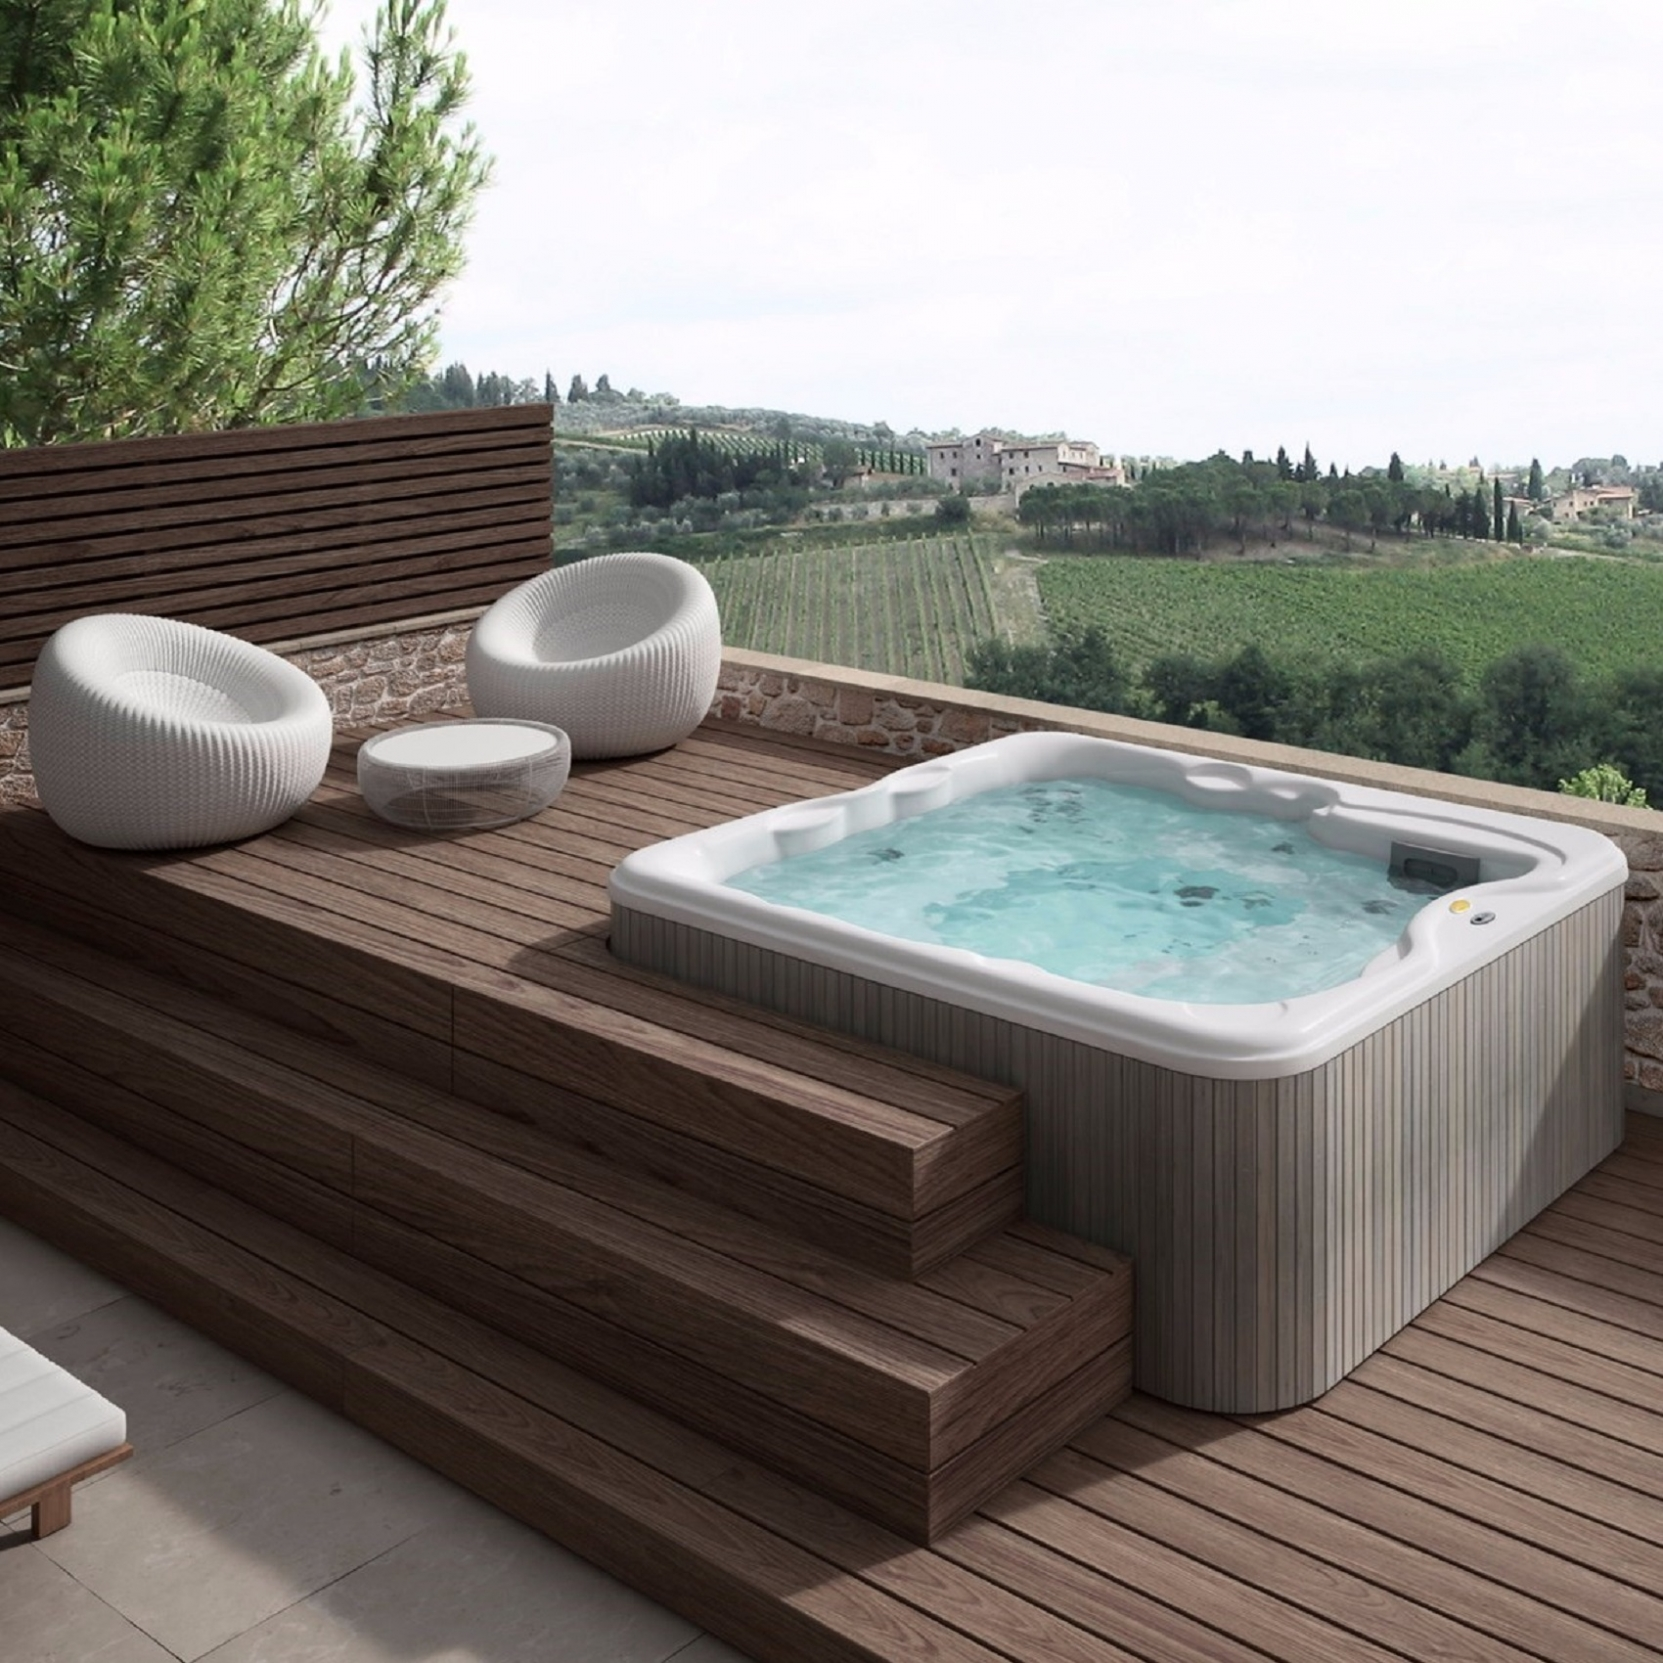 Outdoor Mini Jacuzzi.Jacuzzi Lodge Mini Pool Tattahome